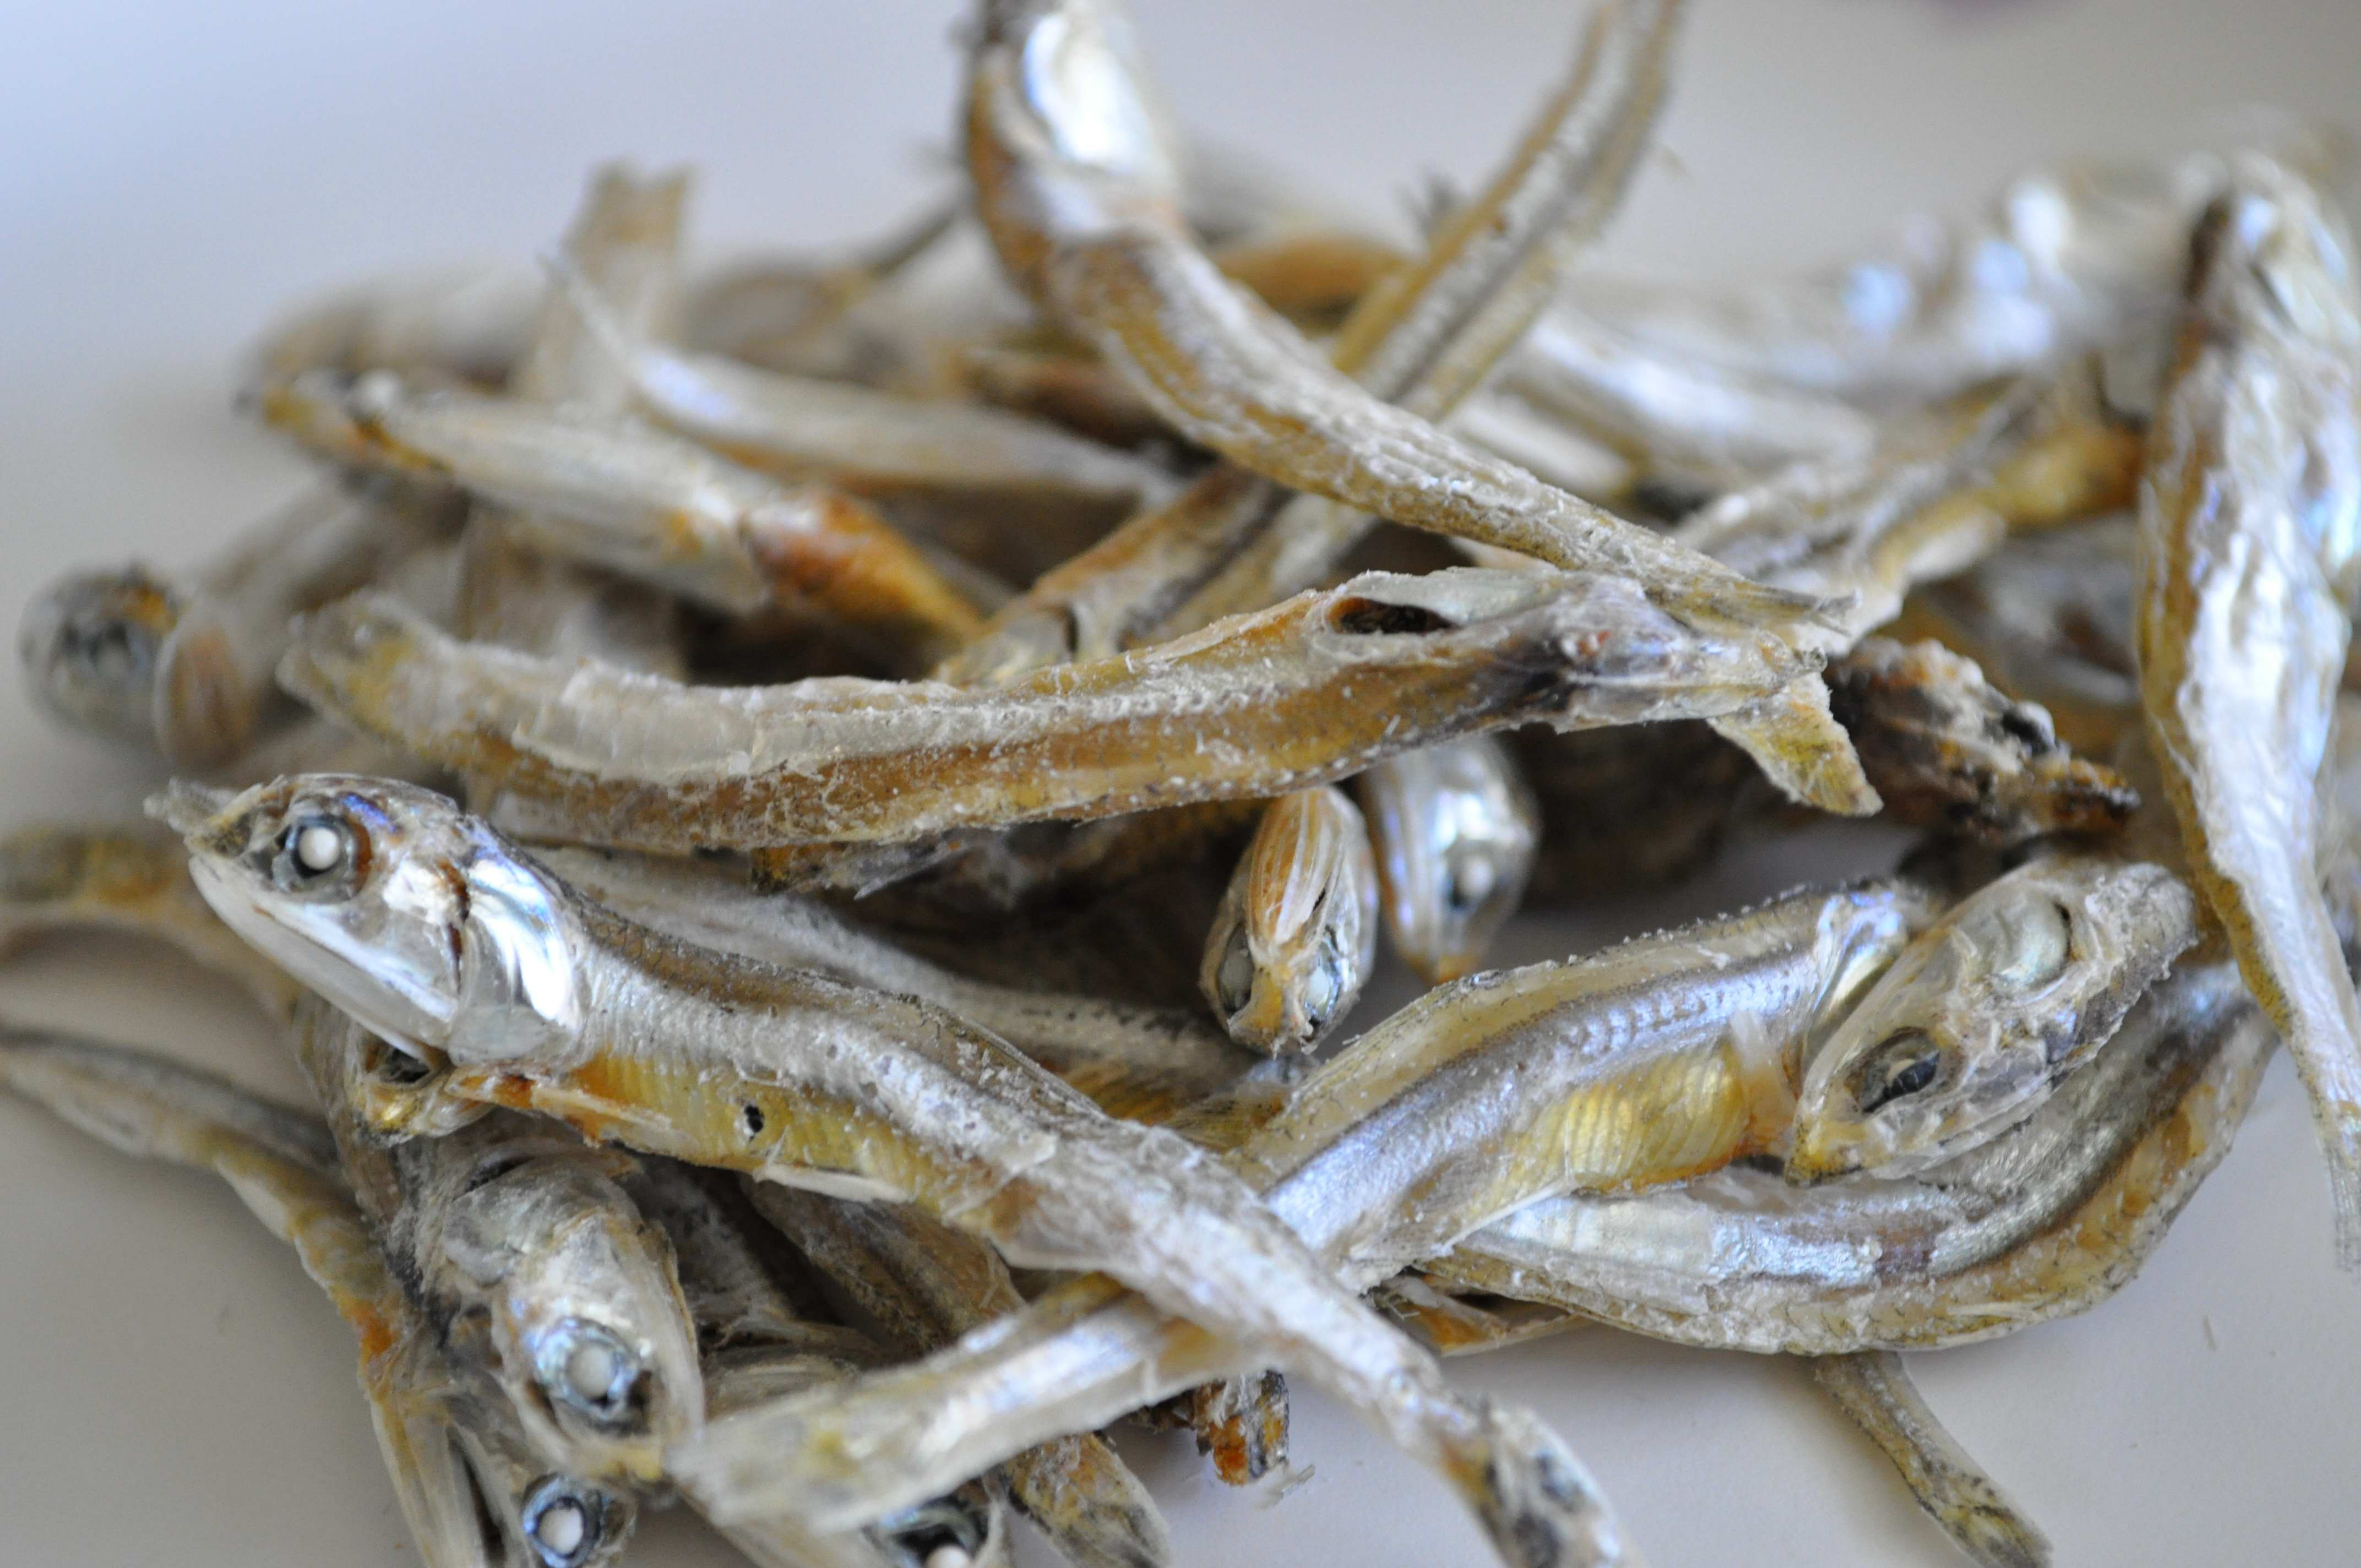 Smaller Gulmul Myulchi (작은 국물멸치) - Smaller Anchovies for Stock